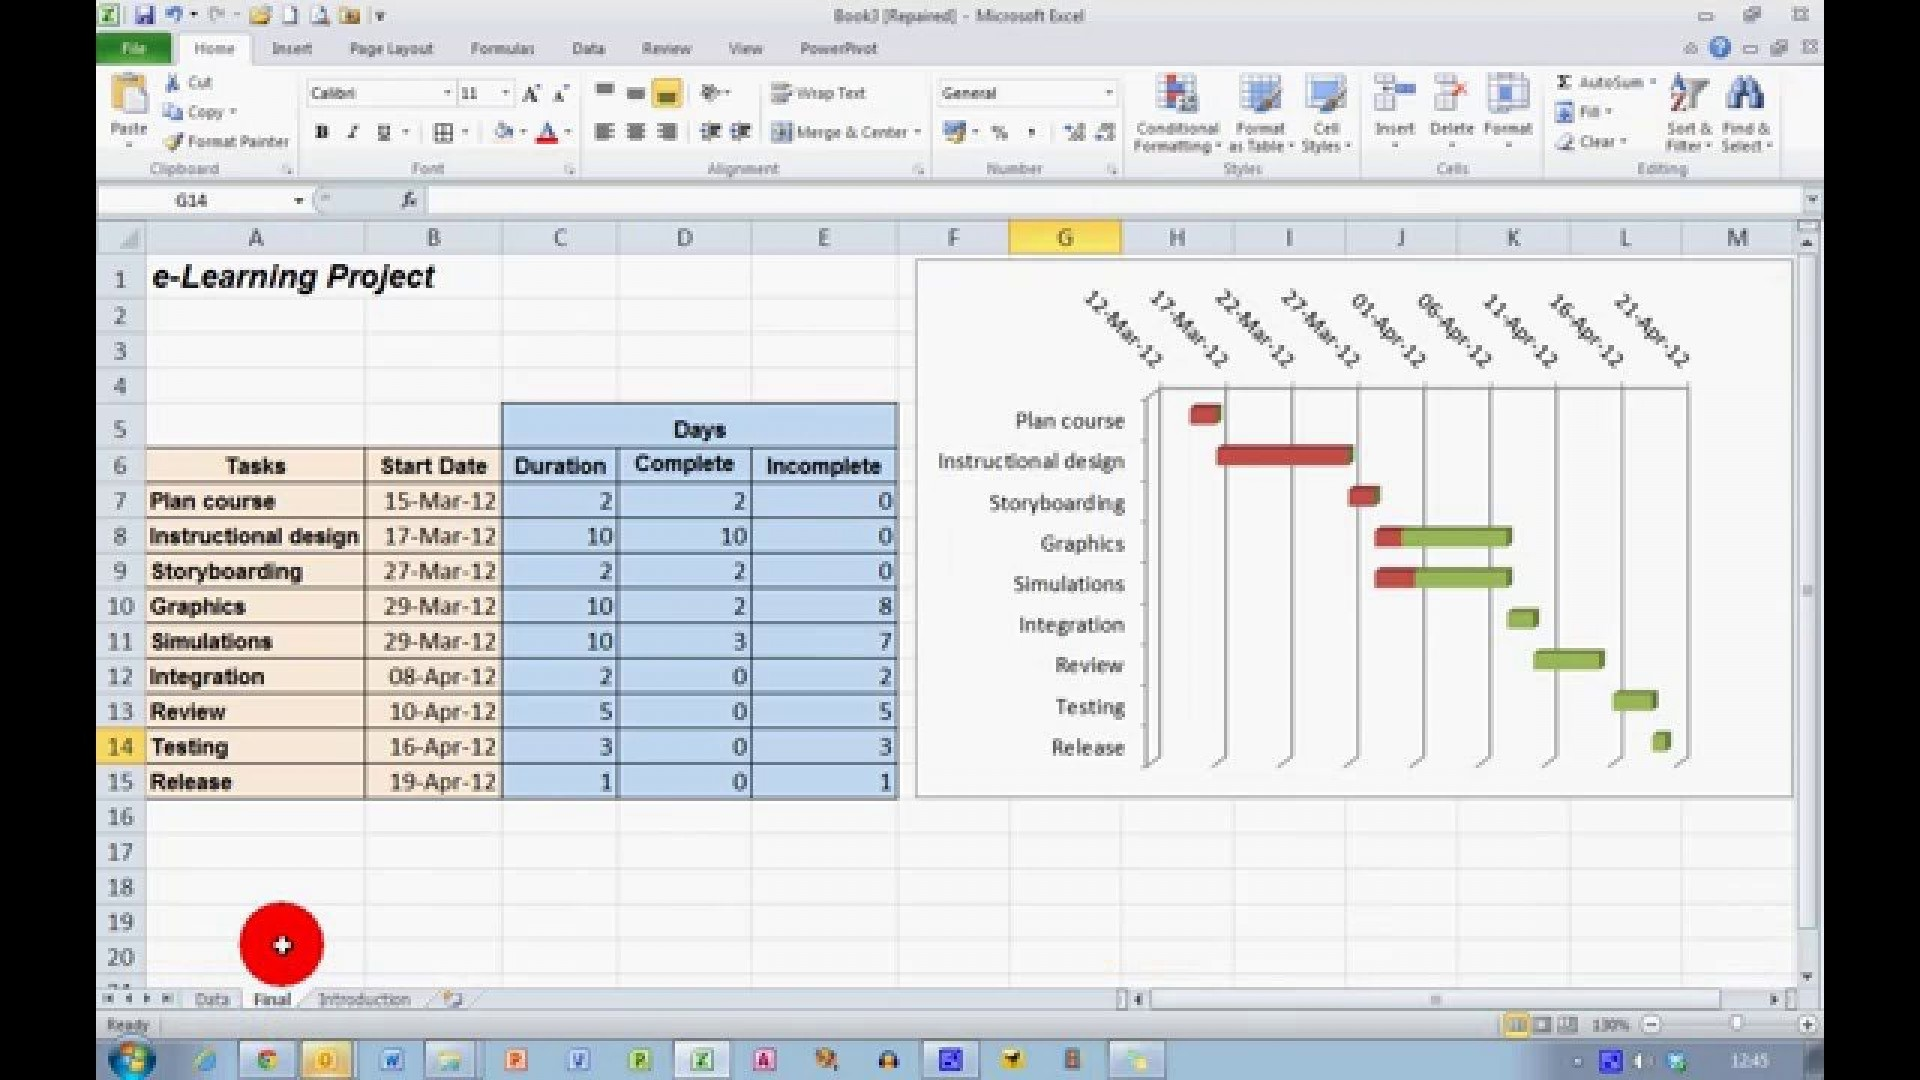 002 Marvelou Gantt Chart Template In Excel 2020 Highest Clarity  Free1920